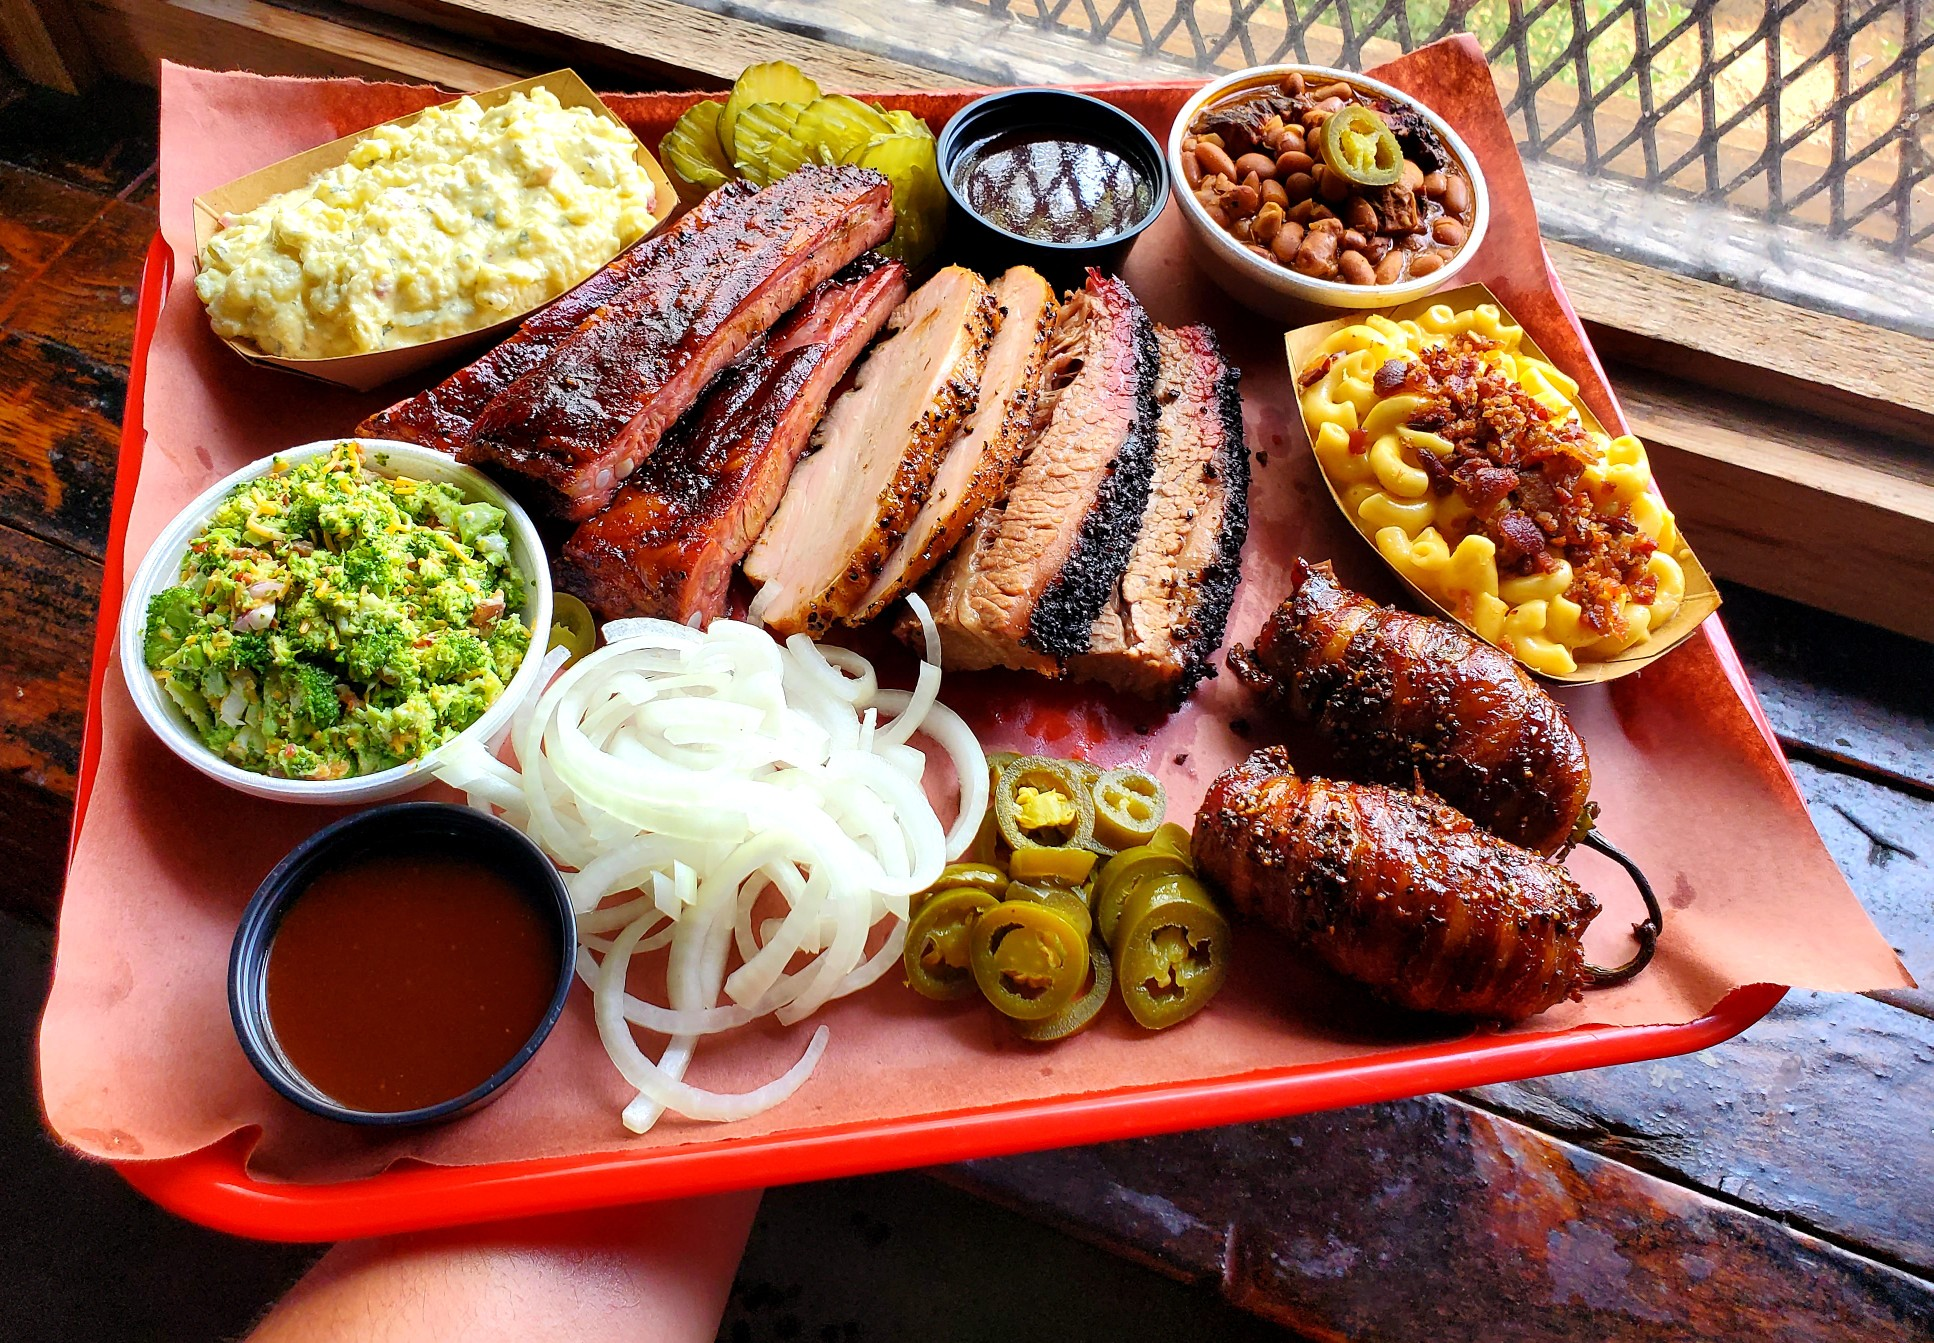 A red platter of barbecue